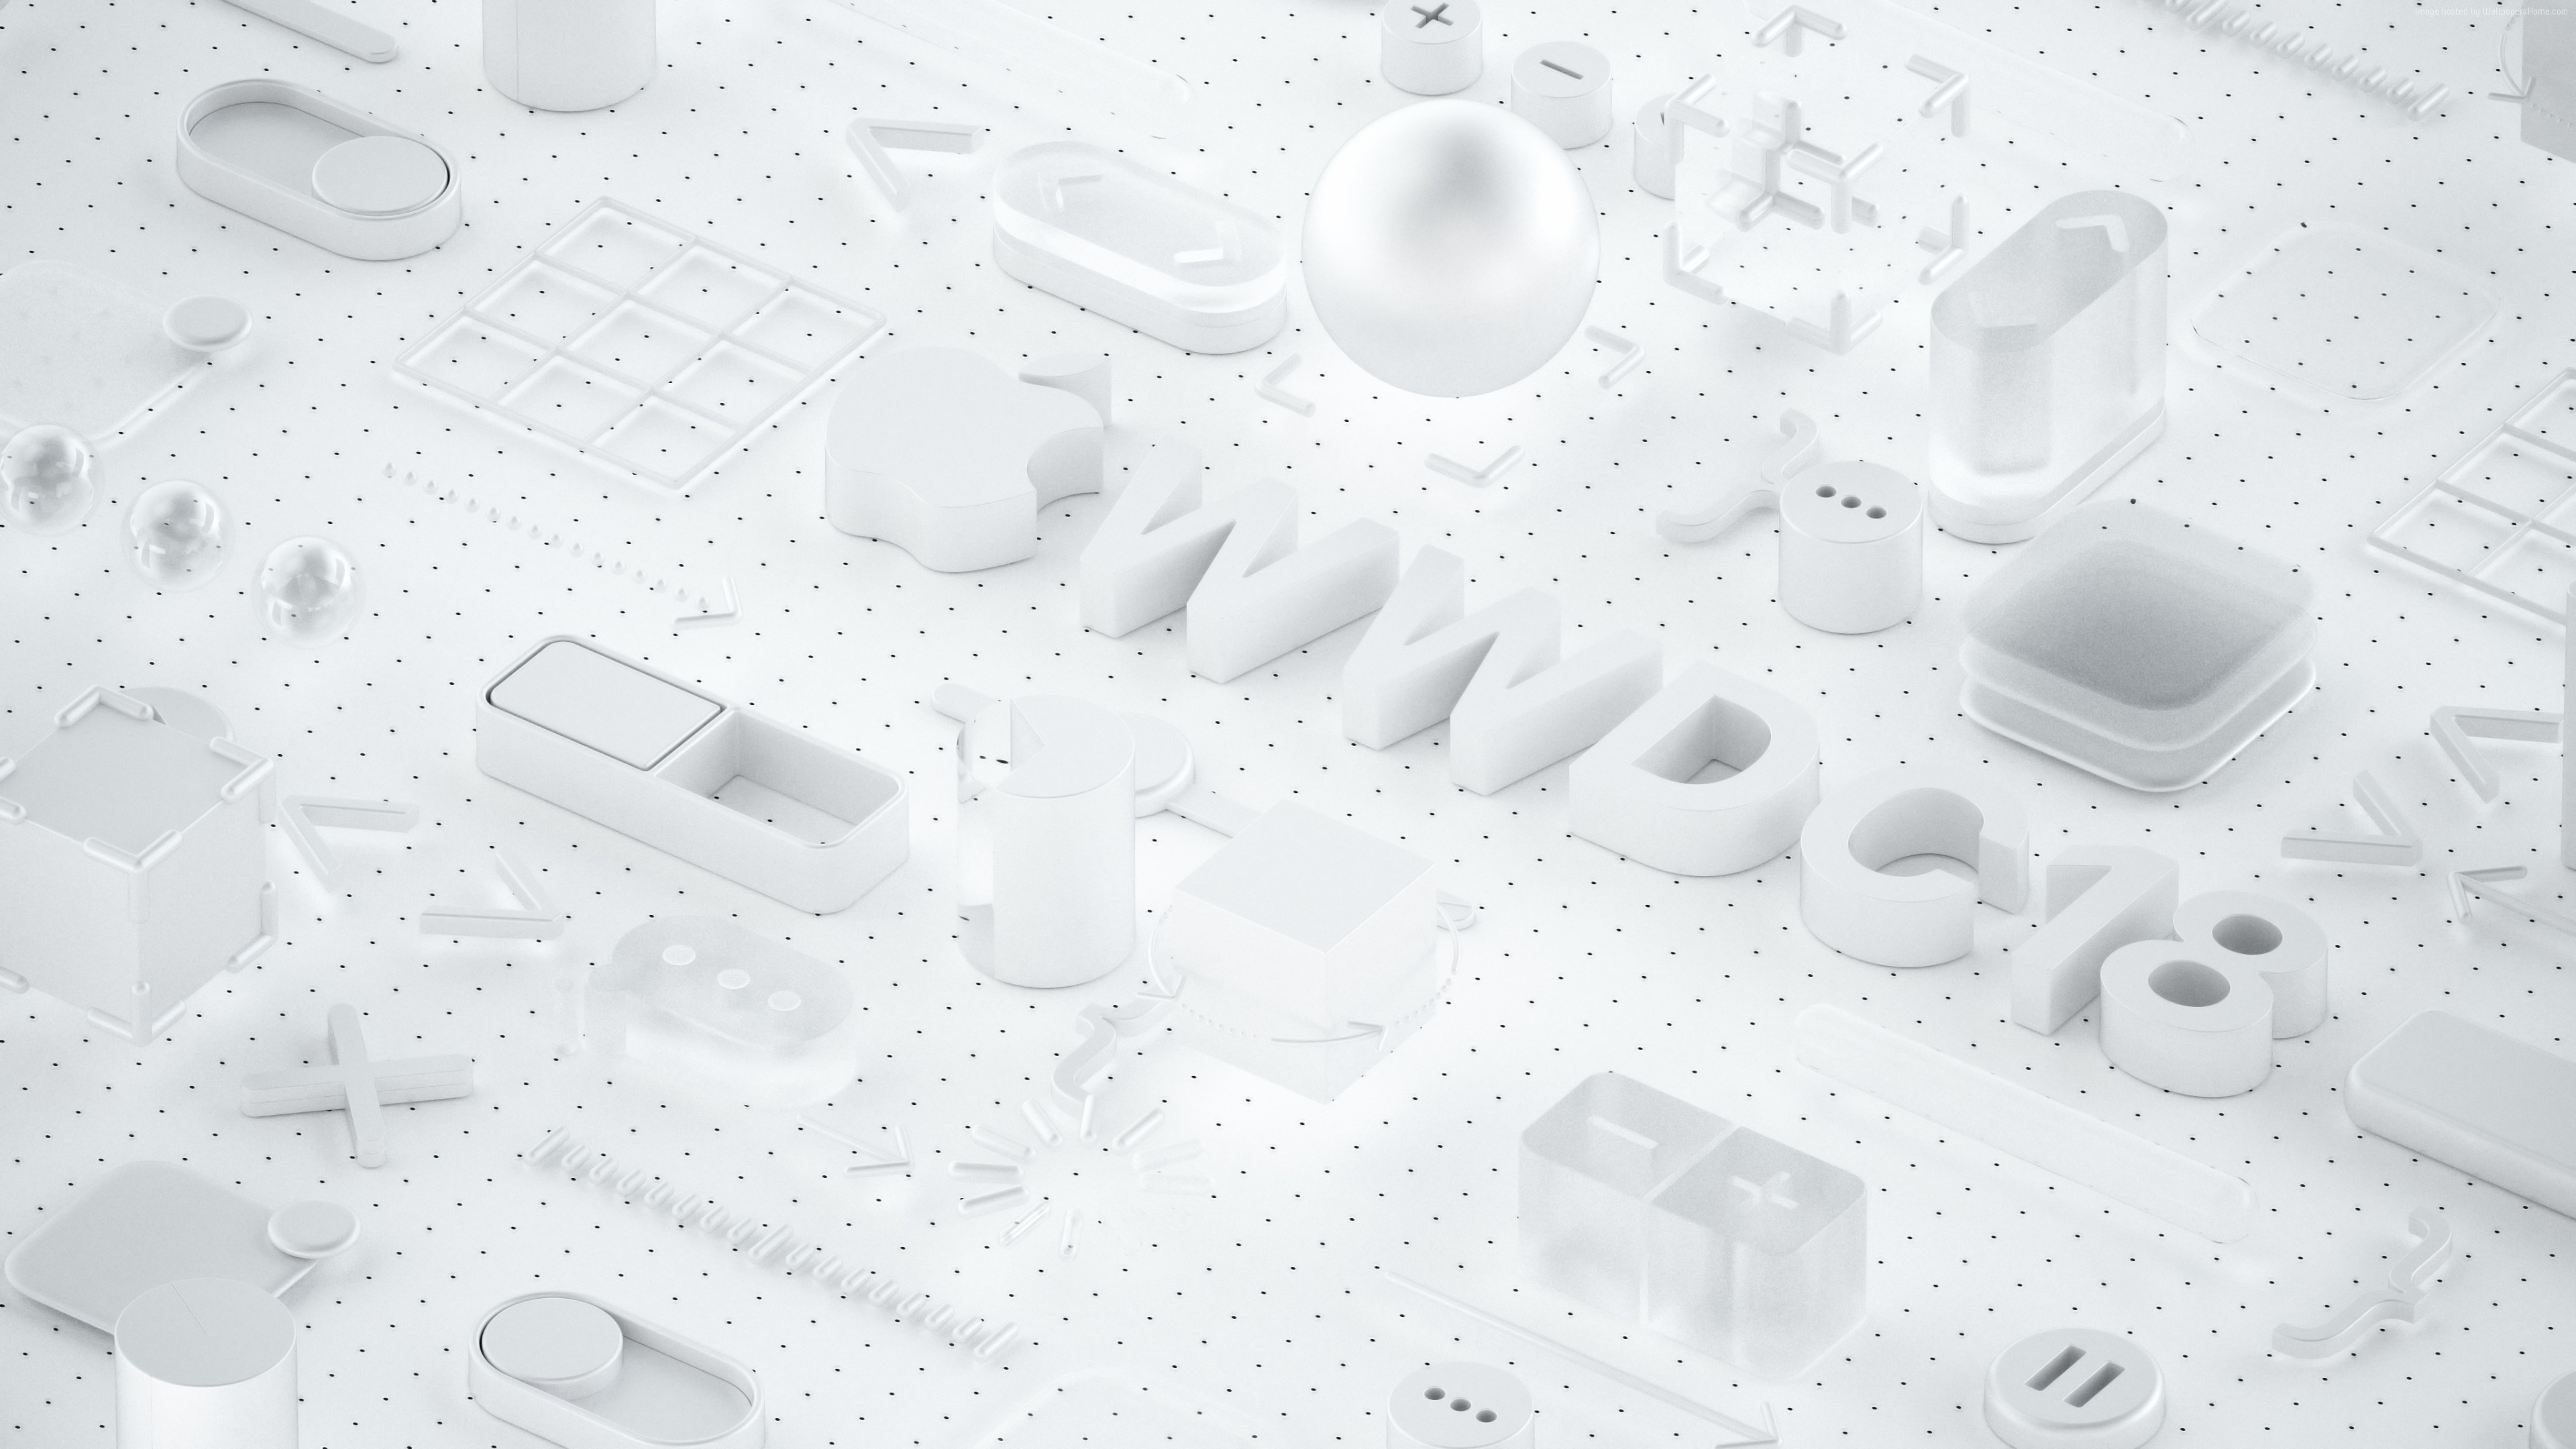 Wallpaper WWDC 2018, White, 3D, 4K, Hi-Tech